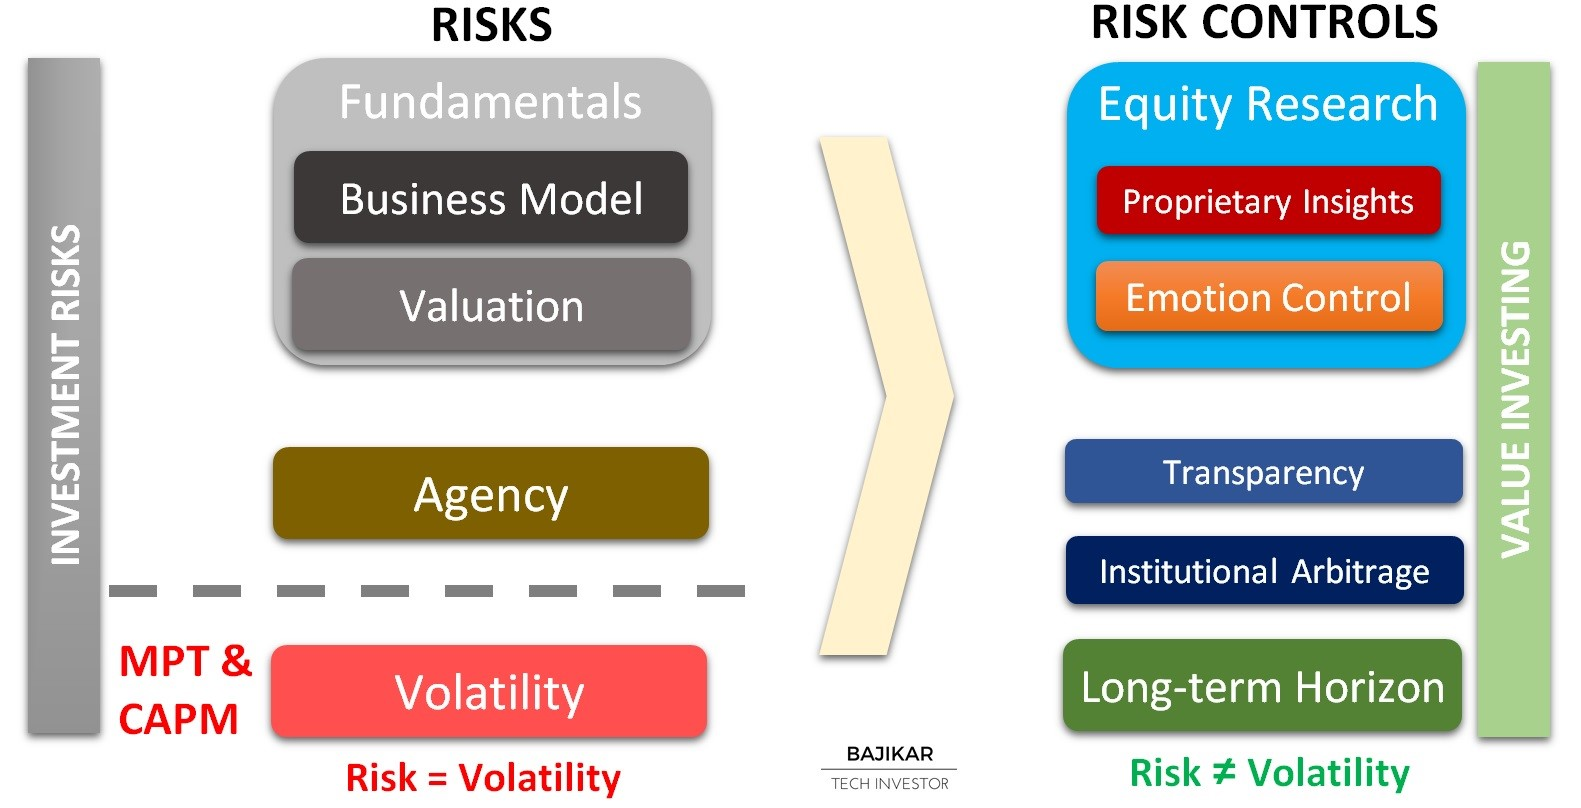 A Value Investor's View of Risk